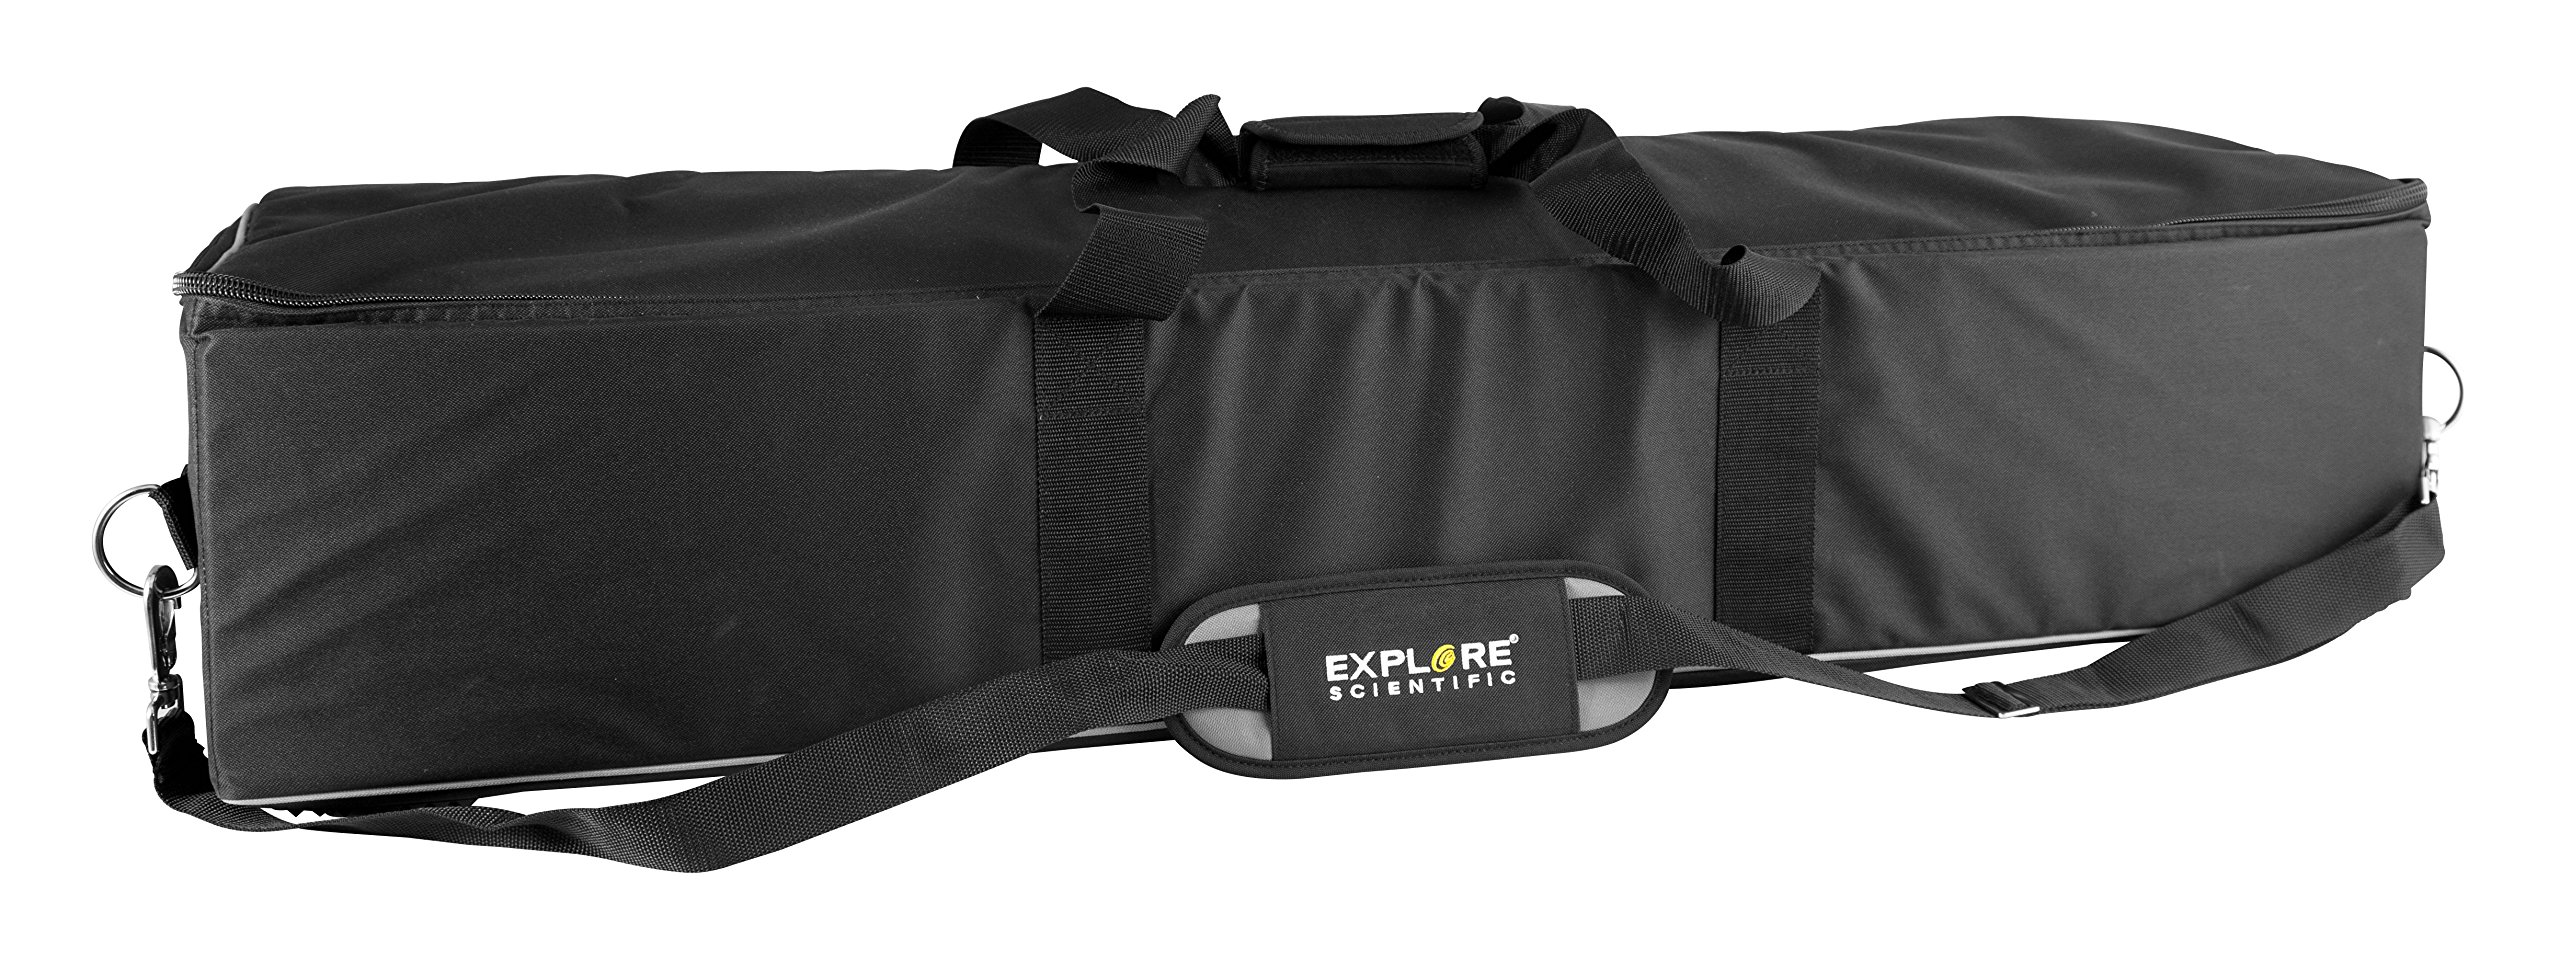 Explore Scientific Soft-sided carry case for ED127, ED127CF, DAR127, and DAR152 by Explore Scientific